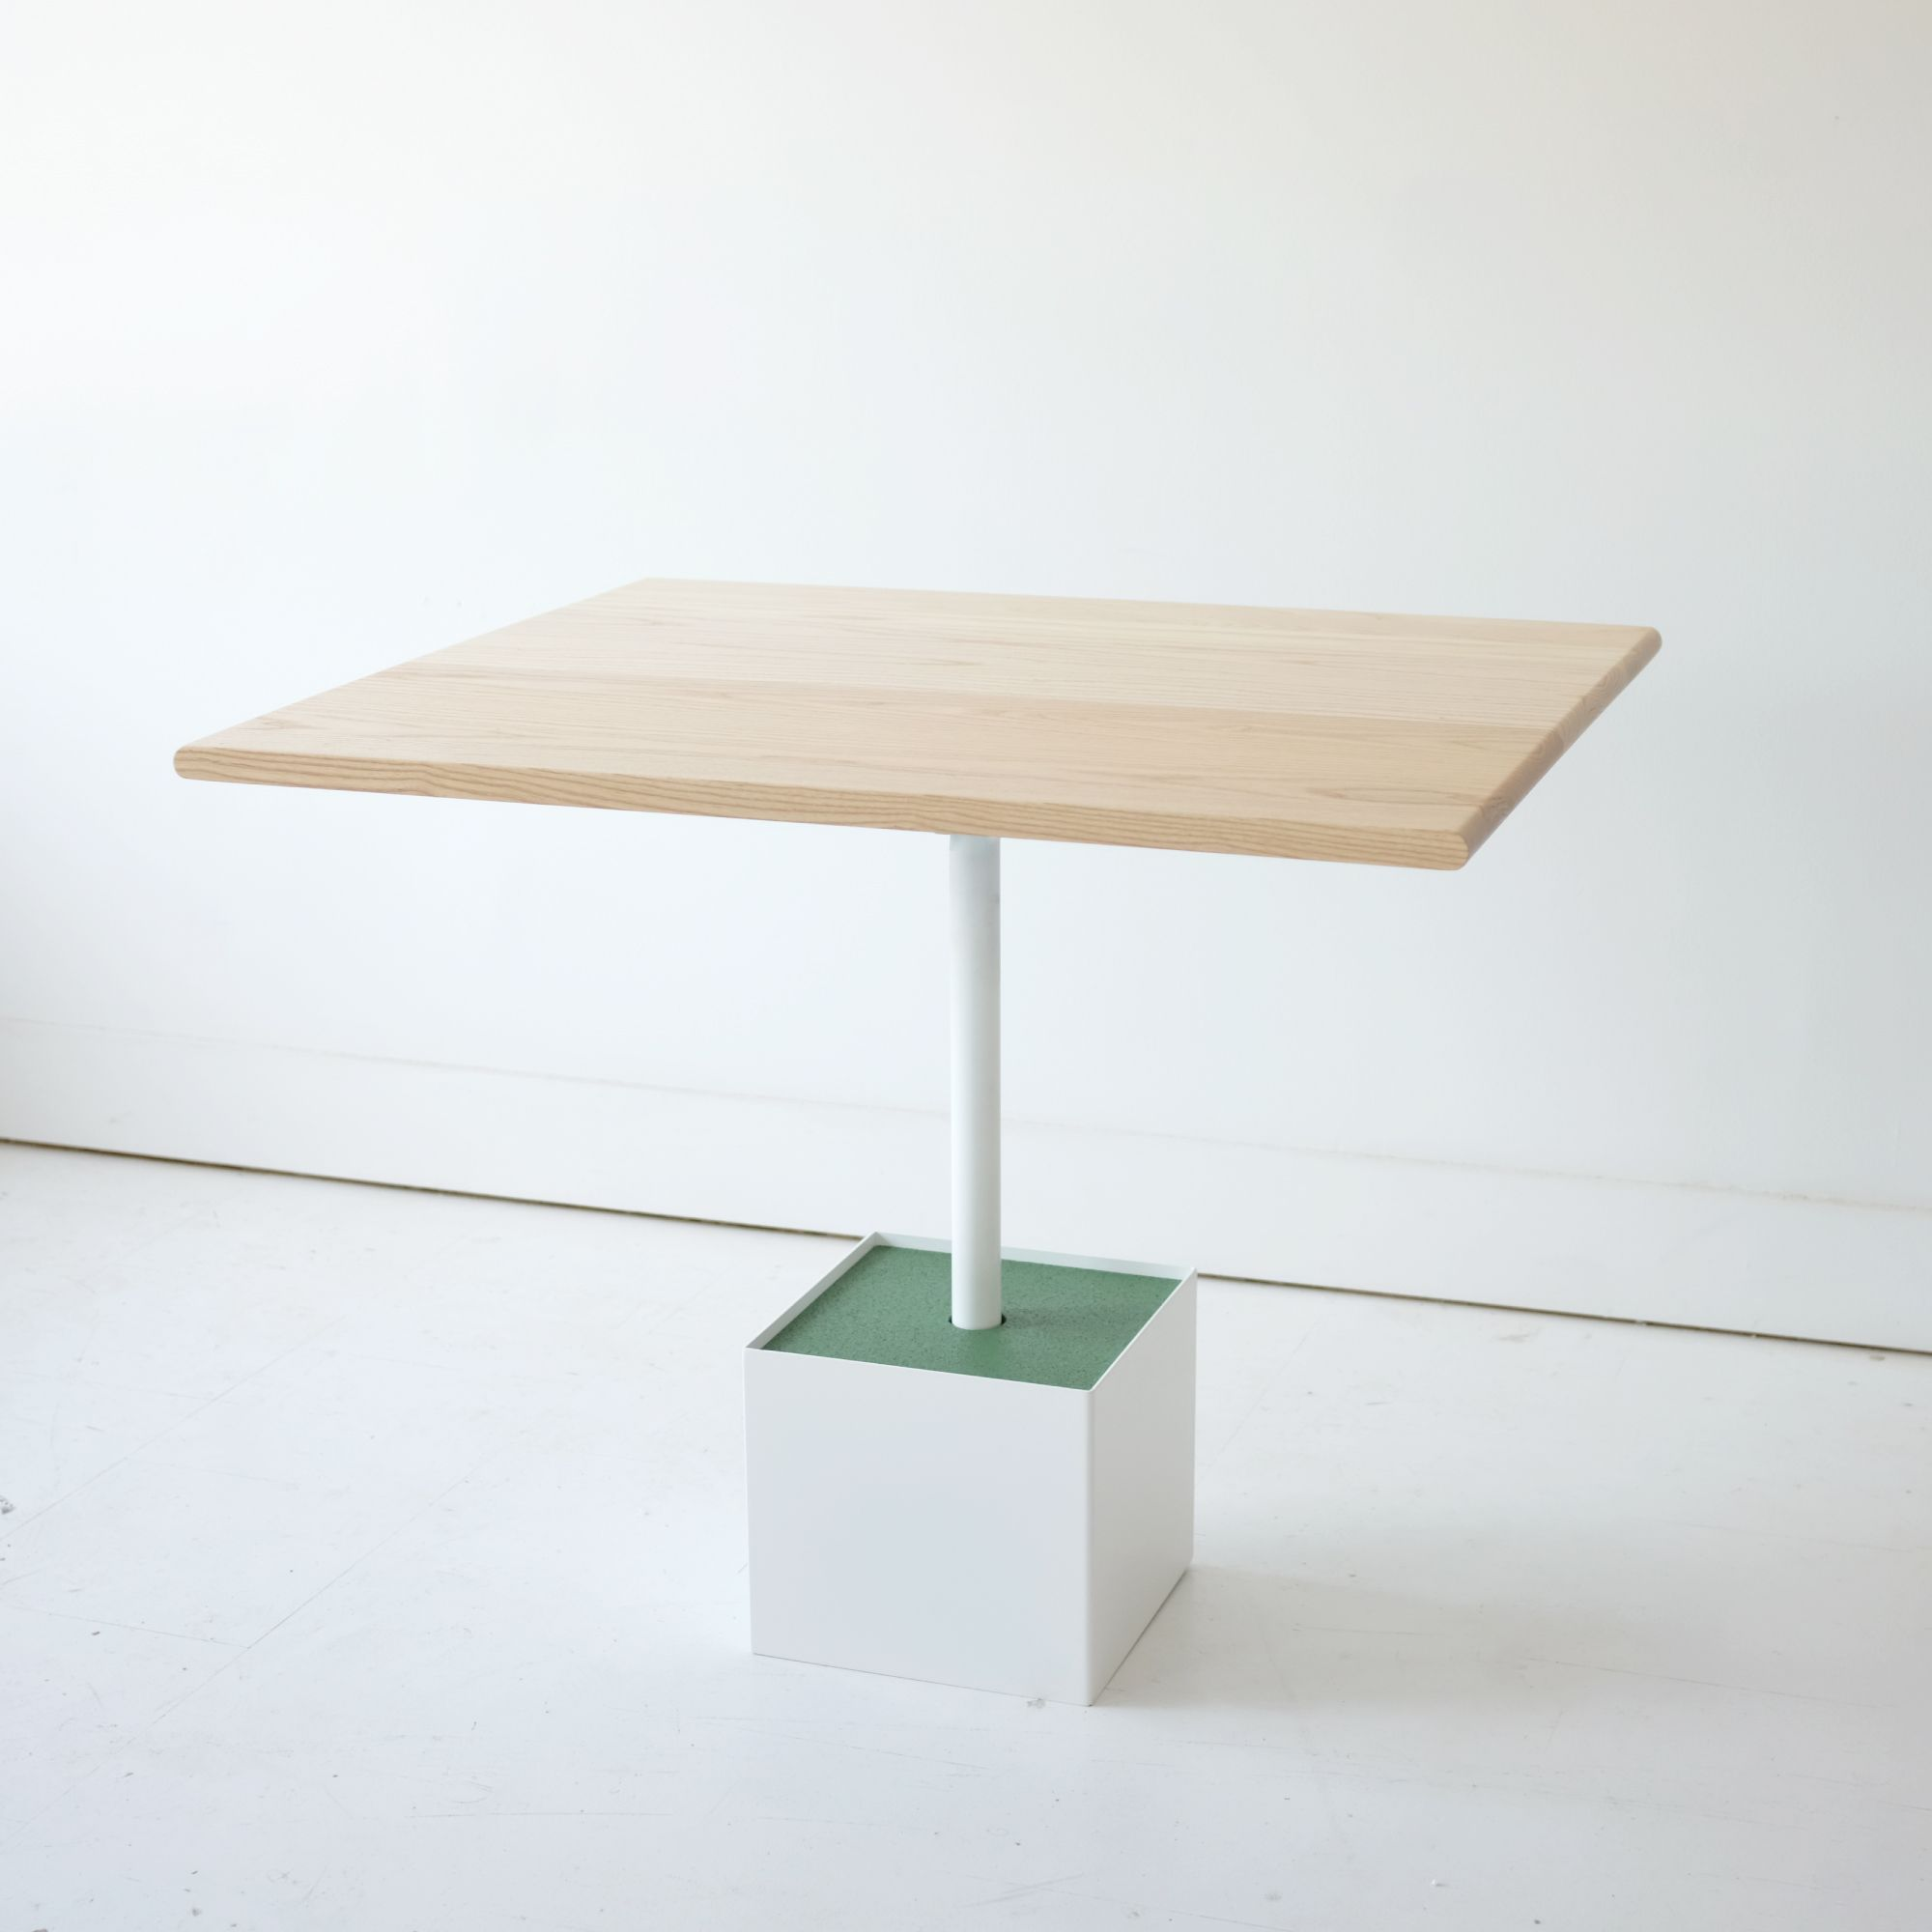 Restaurant Design Restaurant Table The Plante Table By Kroft Is